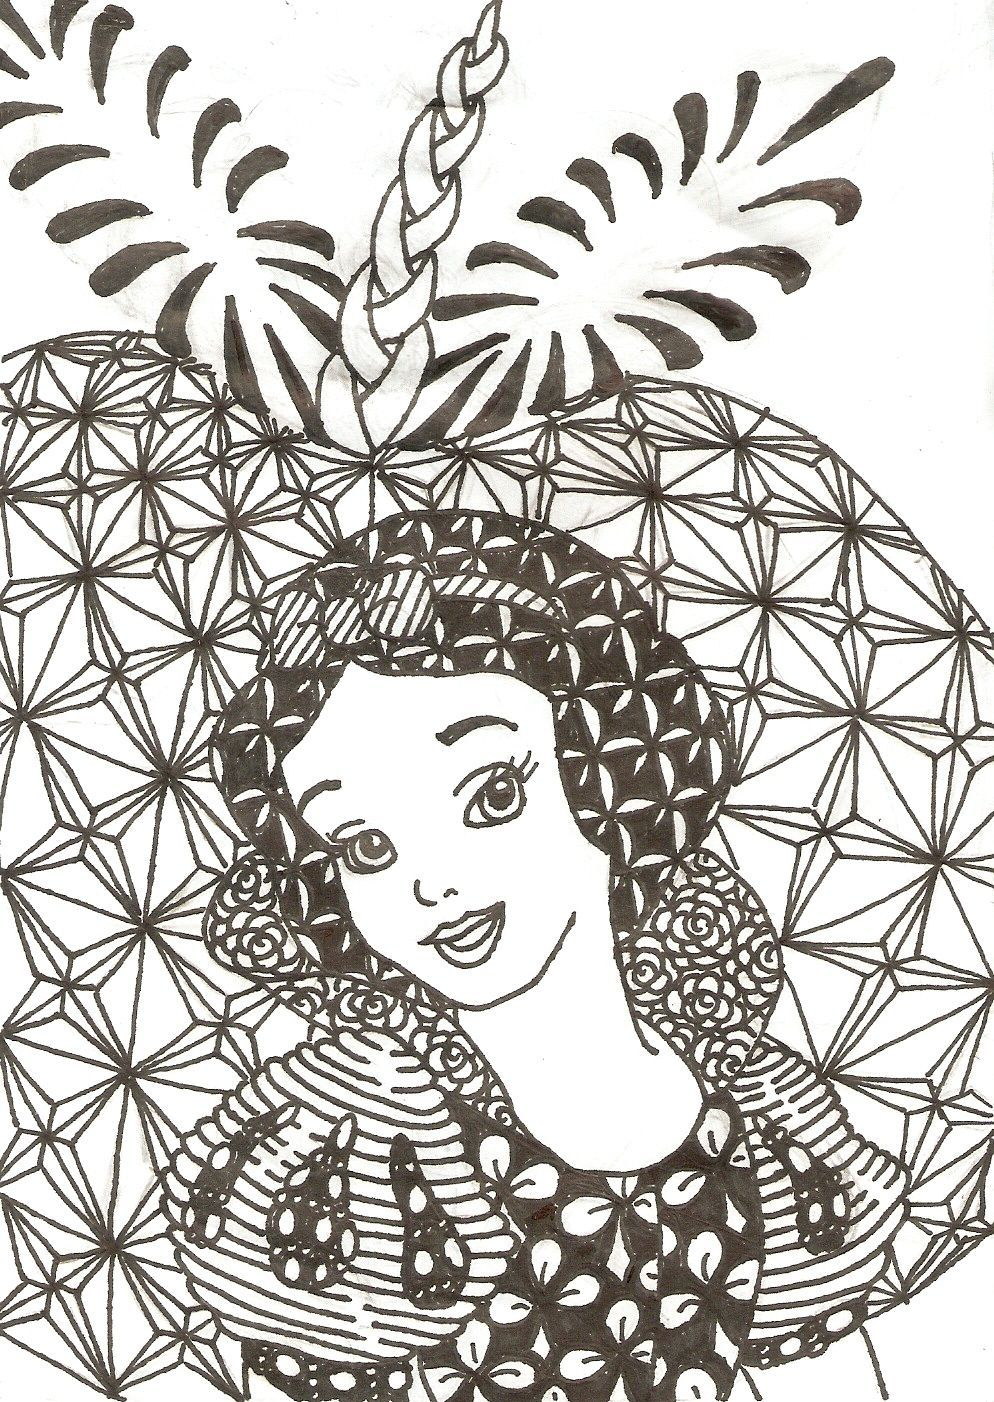 Disney Zentangle Coloring Pages Disney Zentangle Coloring Pages Disney Coloring Pages Coloring Pages Pokemon Coloring Pages